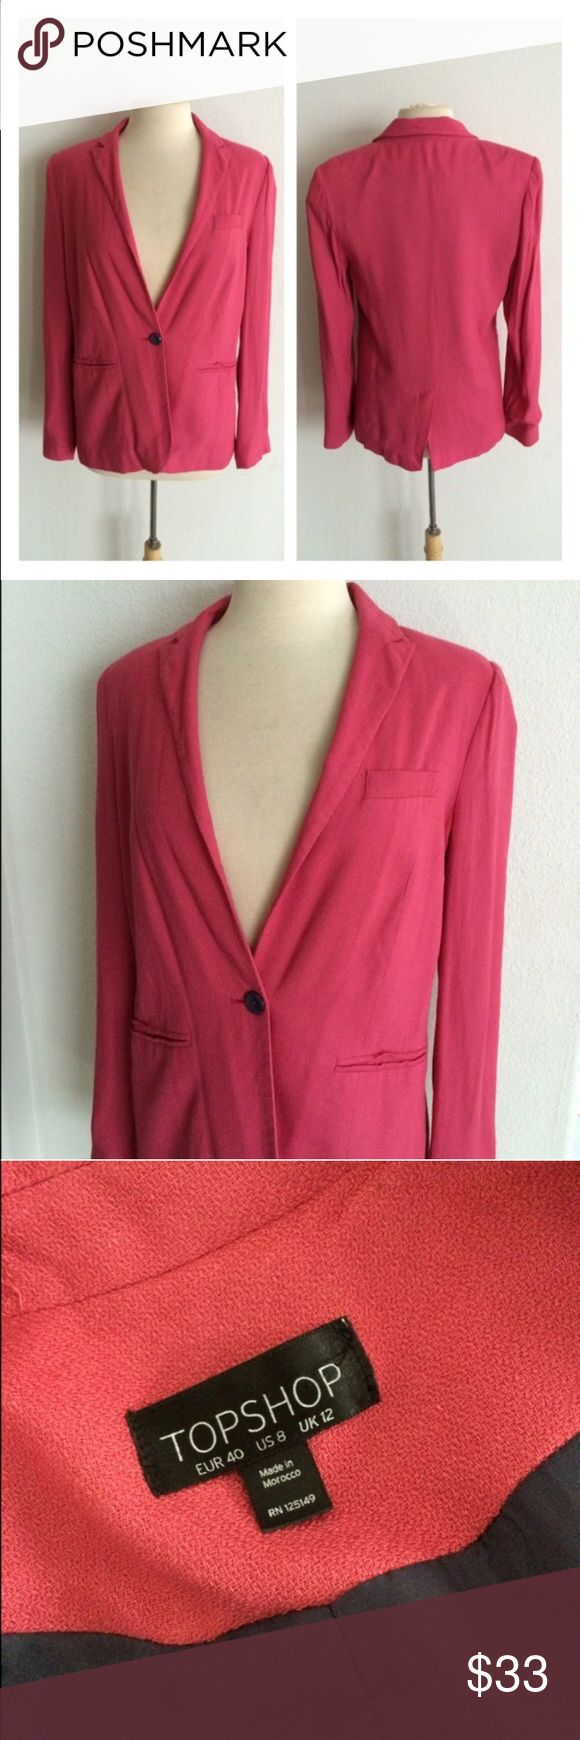 "Topshop pink blazer Topshop pink blazer. Size 8. Measures 27"" long with a 38"" bust. Front pockets aren't functional. Lightly padded shoulders. Plain charcoal gray lining. Exterior is 100% viscose and the lining is 100% polyester. Single button closure. Very good used condition!  🚫NO TRADES🚫 💲Reasonable offers accepted💲 💰Great bundle discounts💰 Topshop Jackets & Coats Blazers"